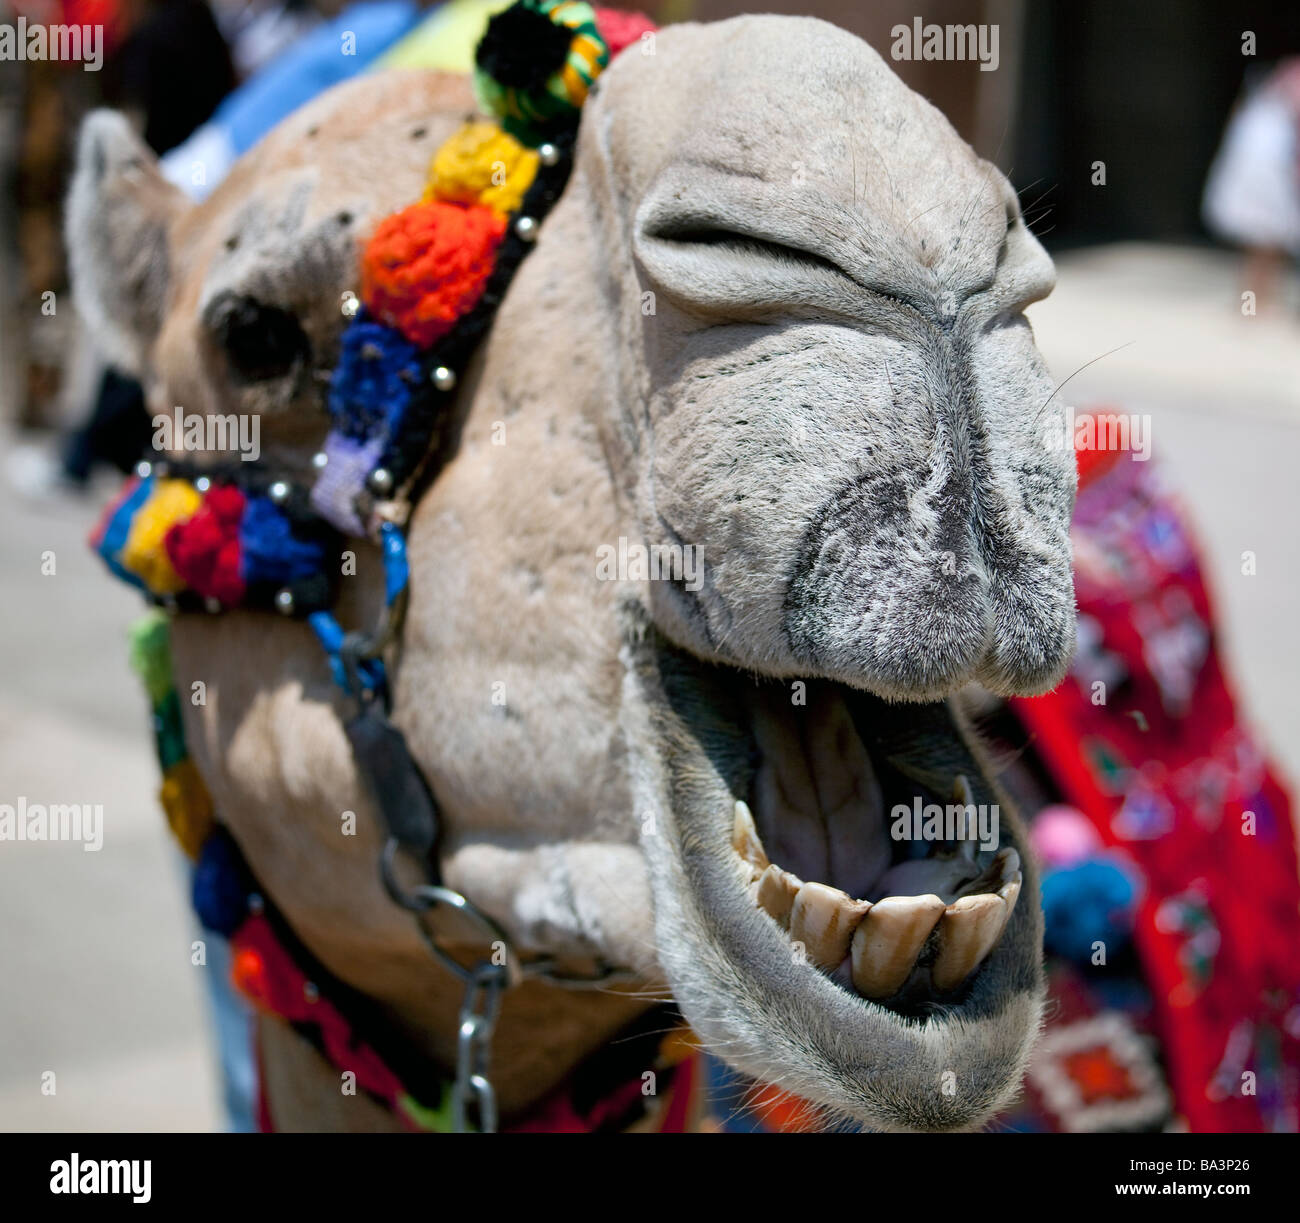 costumed camel at International Students' Day, American University in Cairo, Egypt Stock Photo